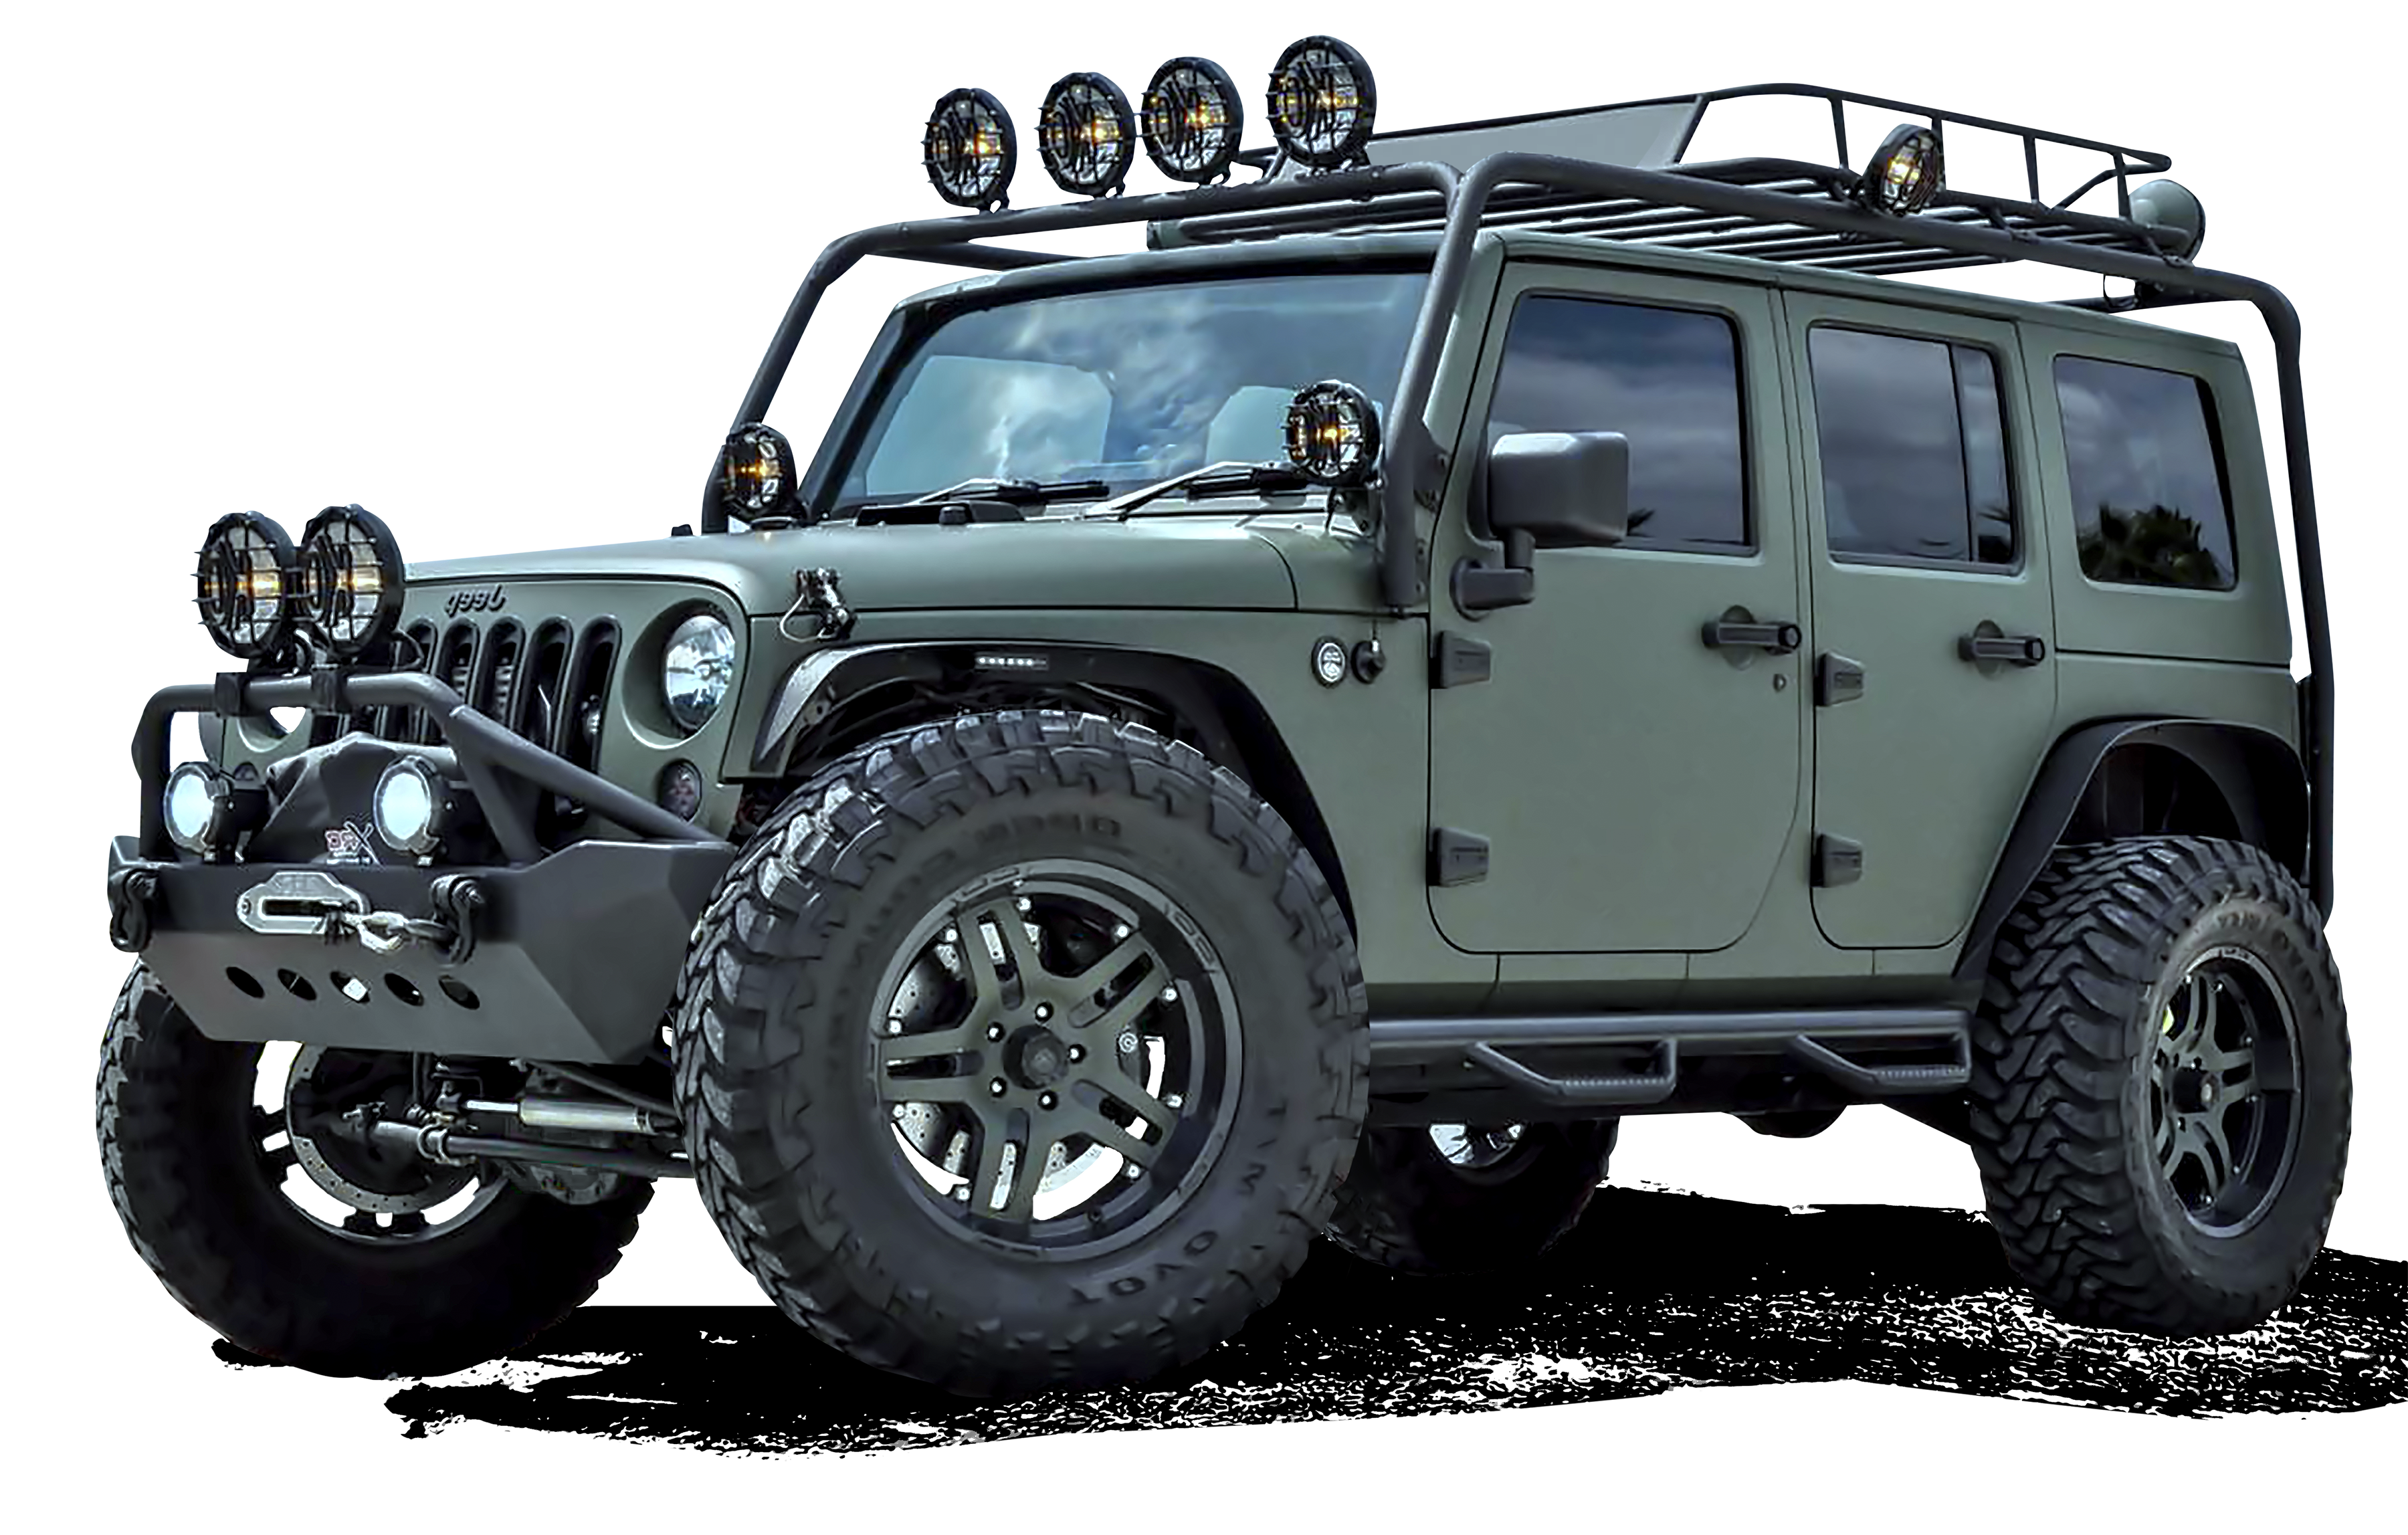 Military Jeep png stock by srinivascreations Military Jeep png stock by  srinivascreations - Jeep HD PNG